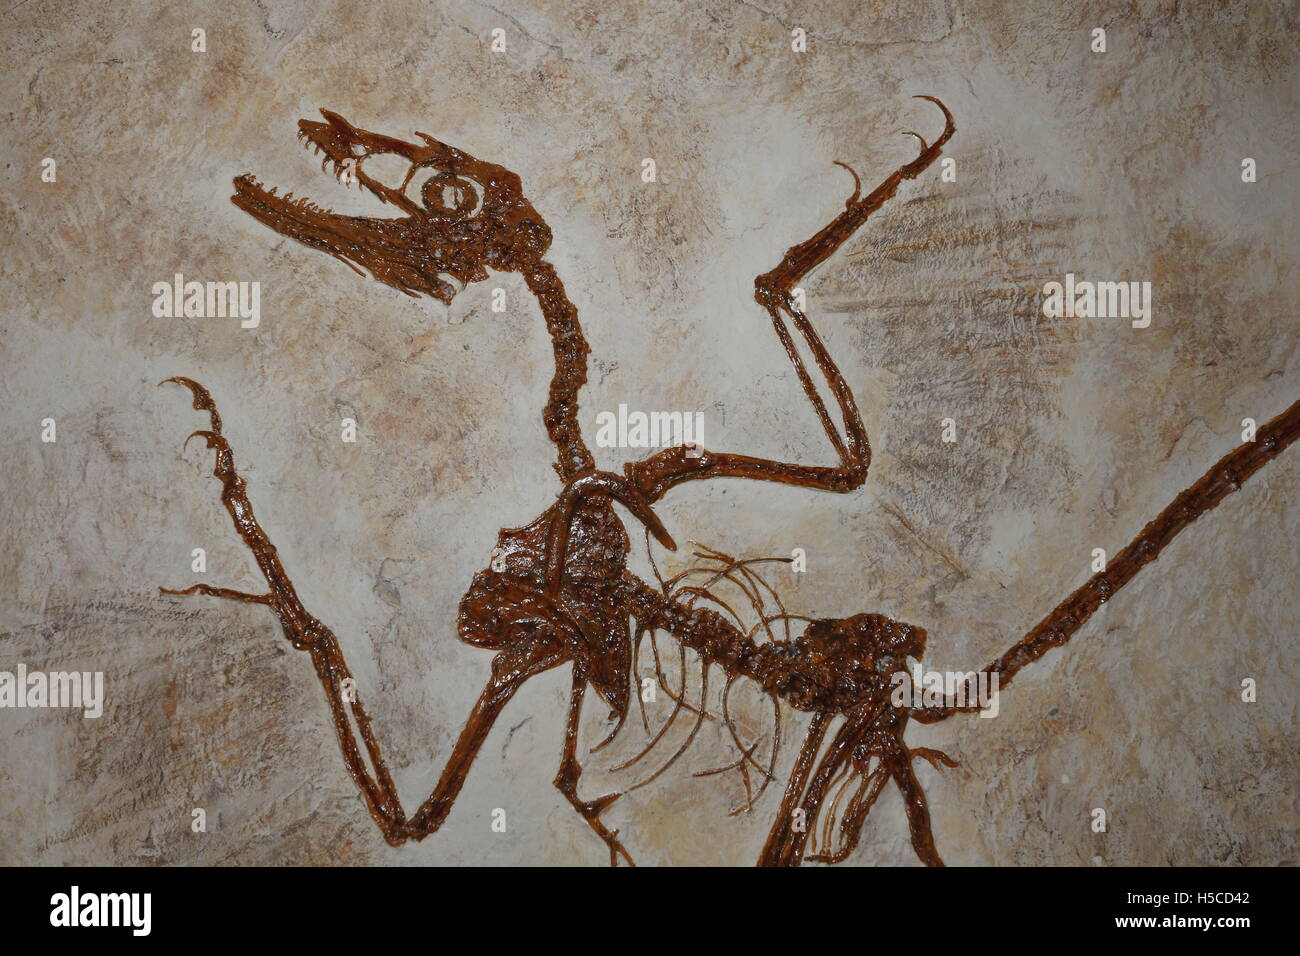 Microraptor fossil, a Feathered Dinosaur, the early Cretaceous Period from China - Stock Image